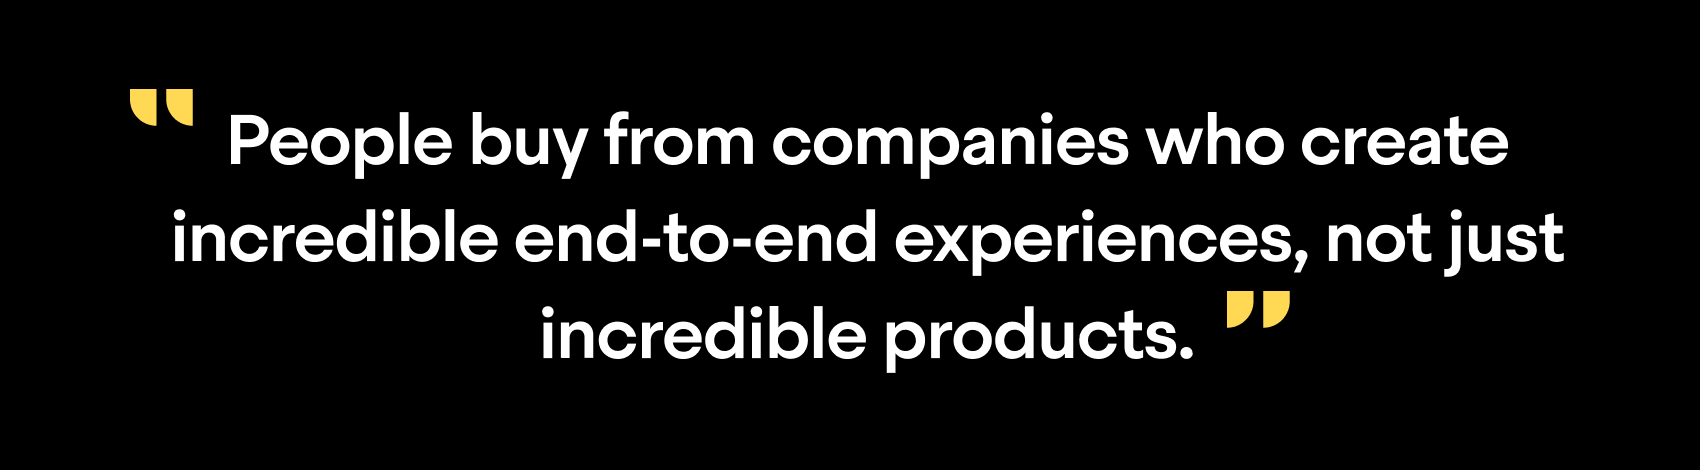 """People buy from companies who create incredible end-to-end experiences, not just incredible products."""